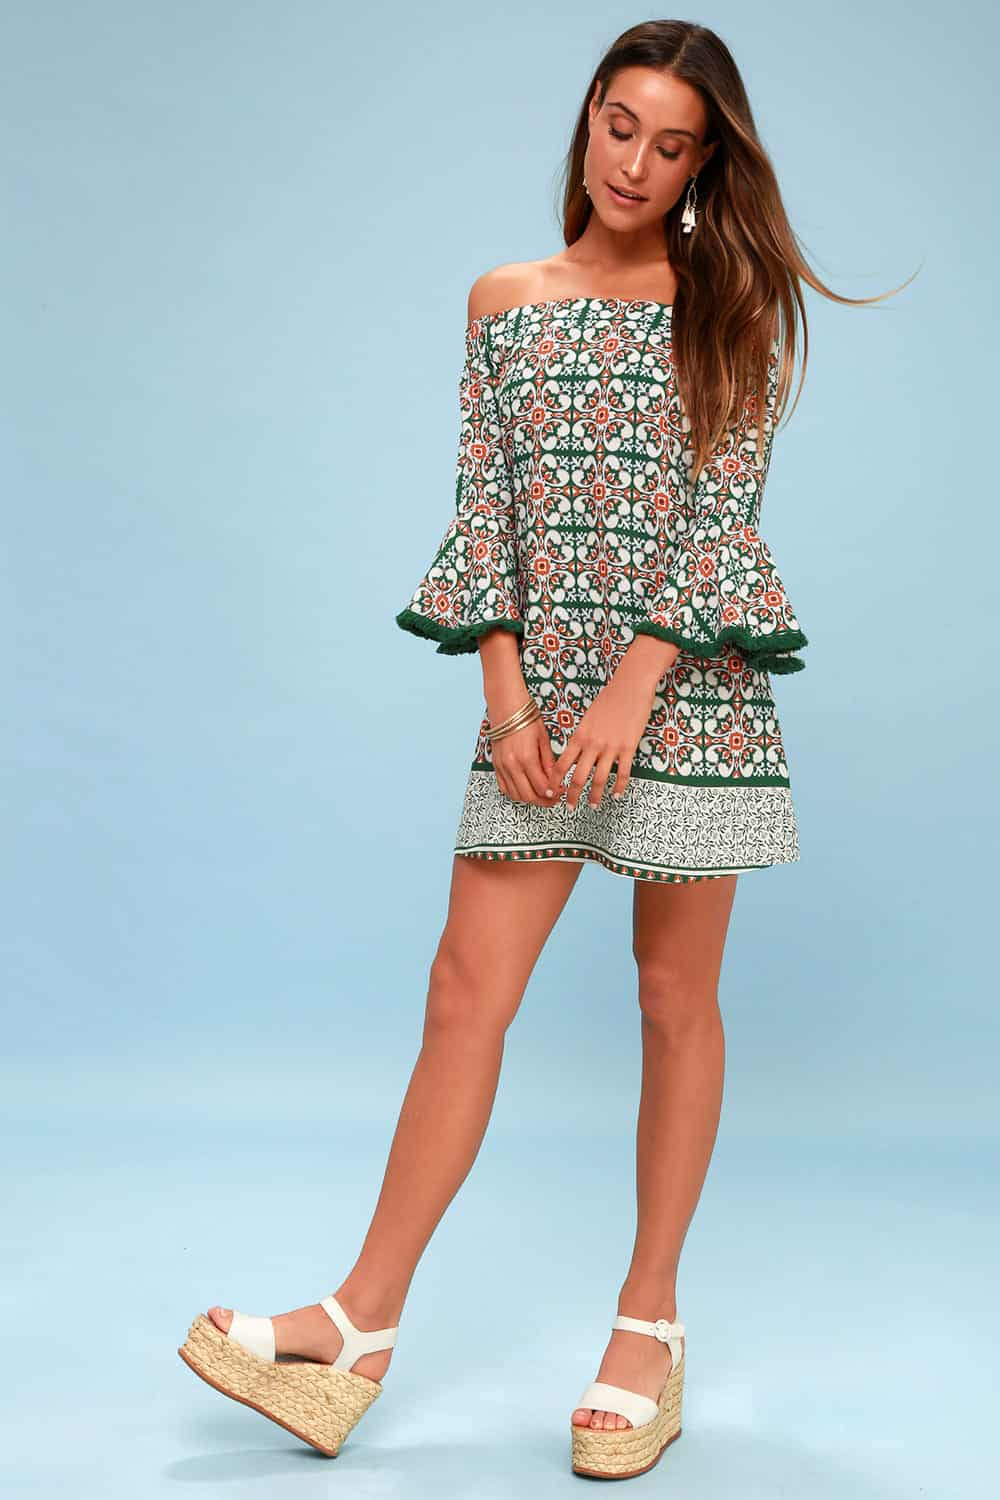 Amalfi Coast Outfits Positano Italy Dresses Green Pattern Off The Shoulder Floral Print Dress